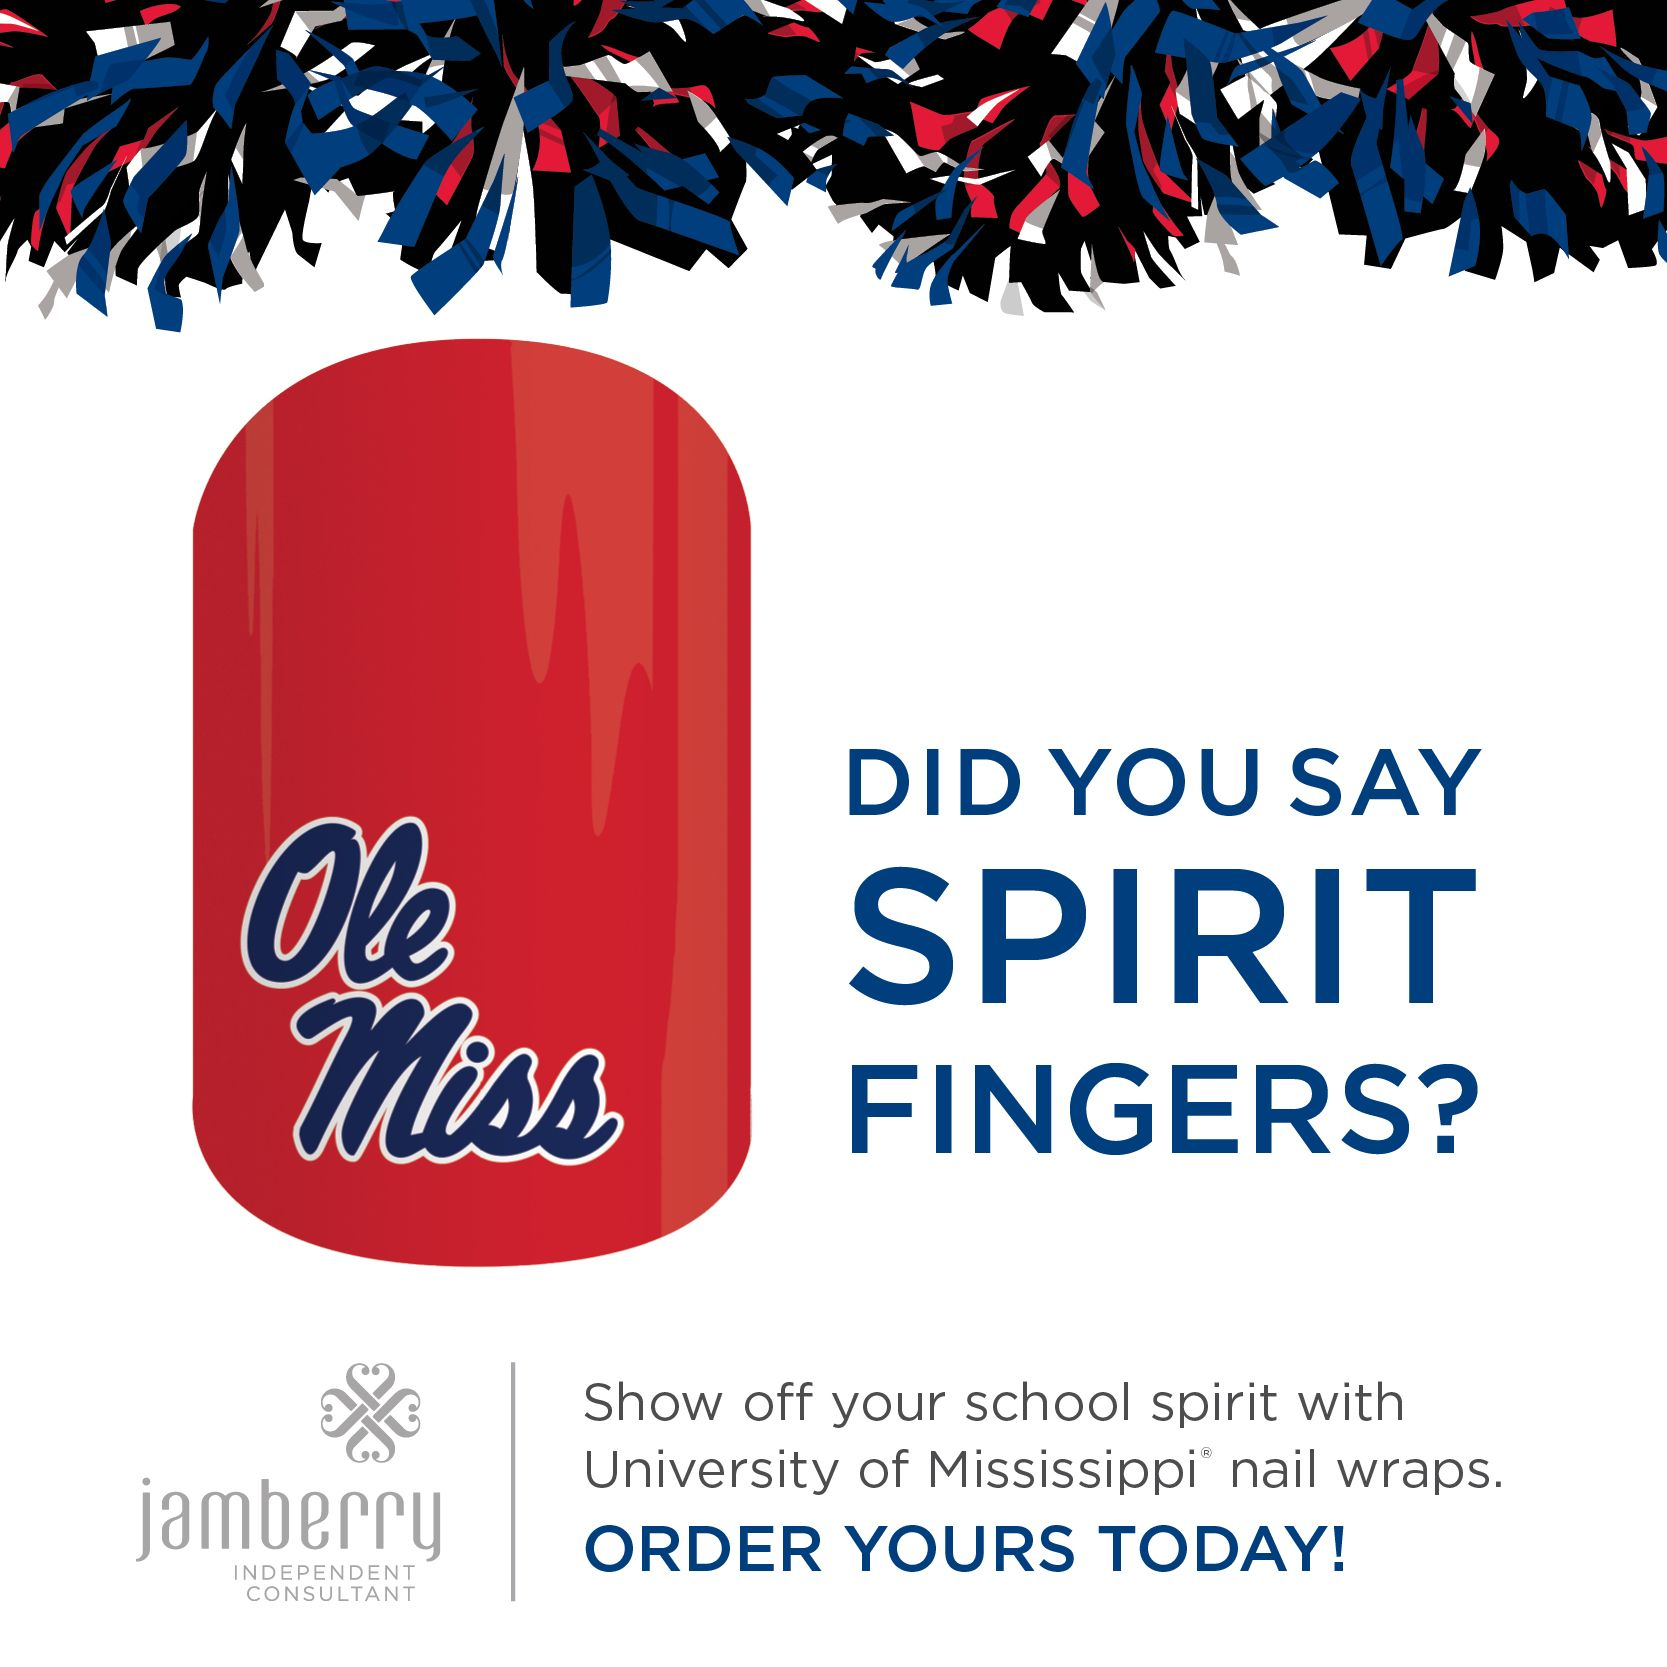 Not sure how I missed these OleMiss wraps the first time